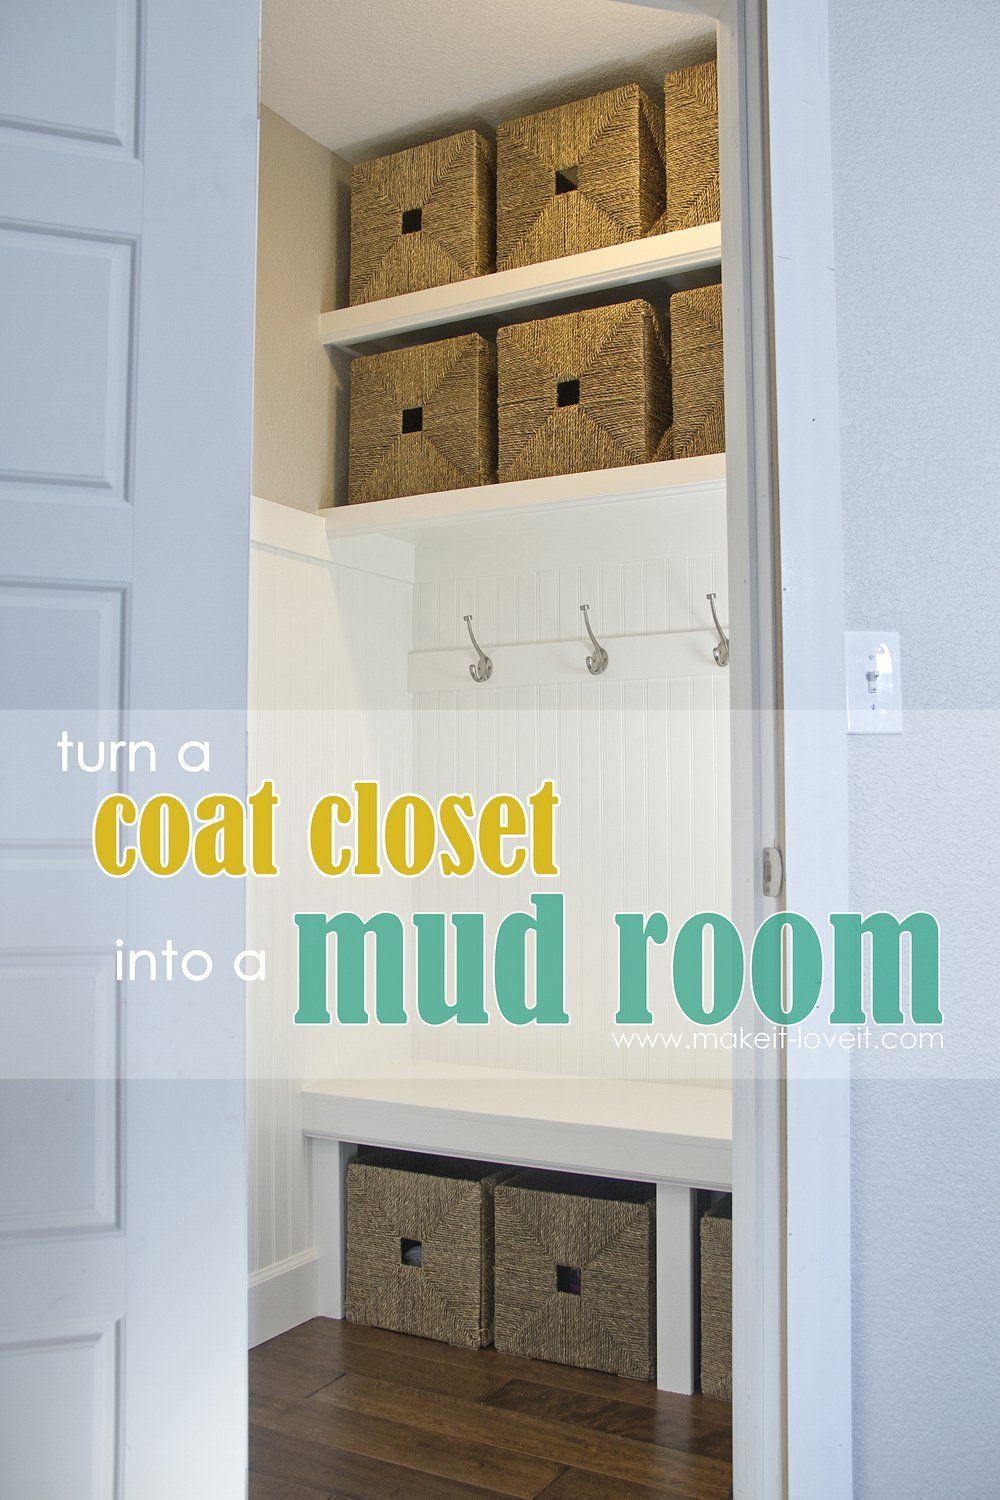 Turn A Coat Closet Into Mudroomwith Hooks And Baskets For